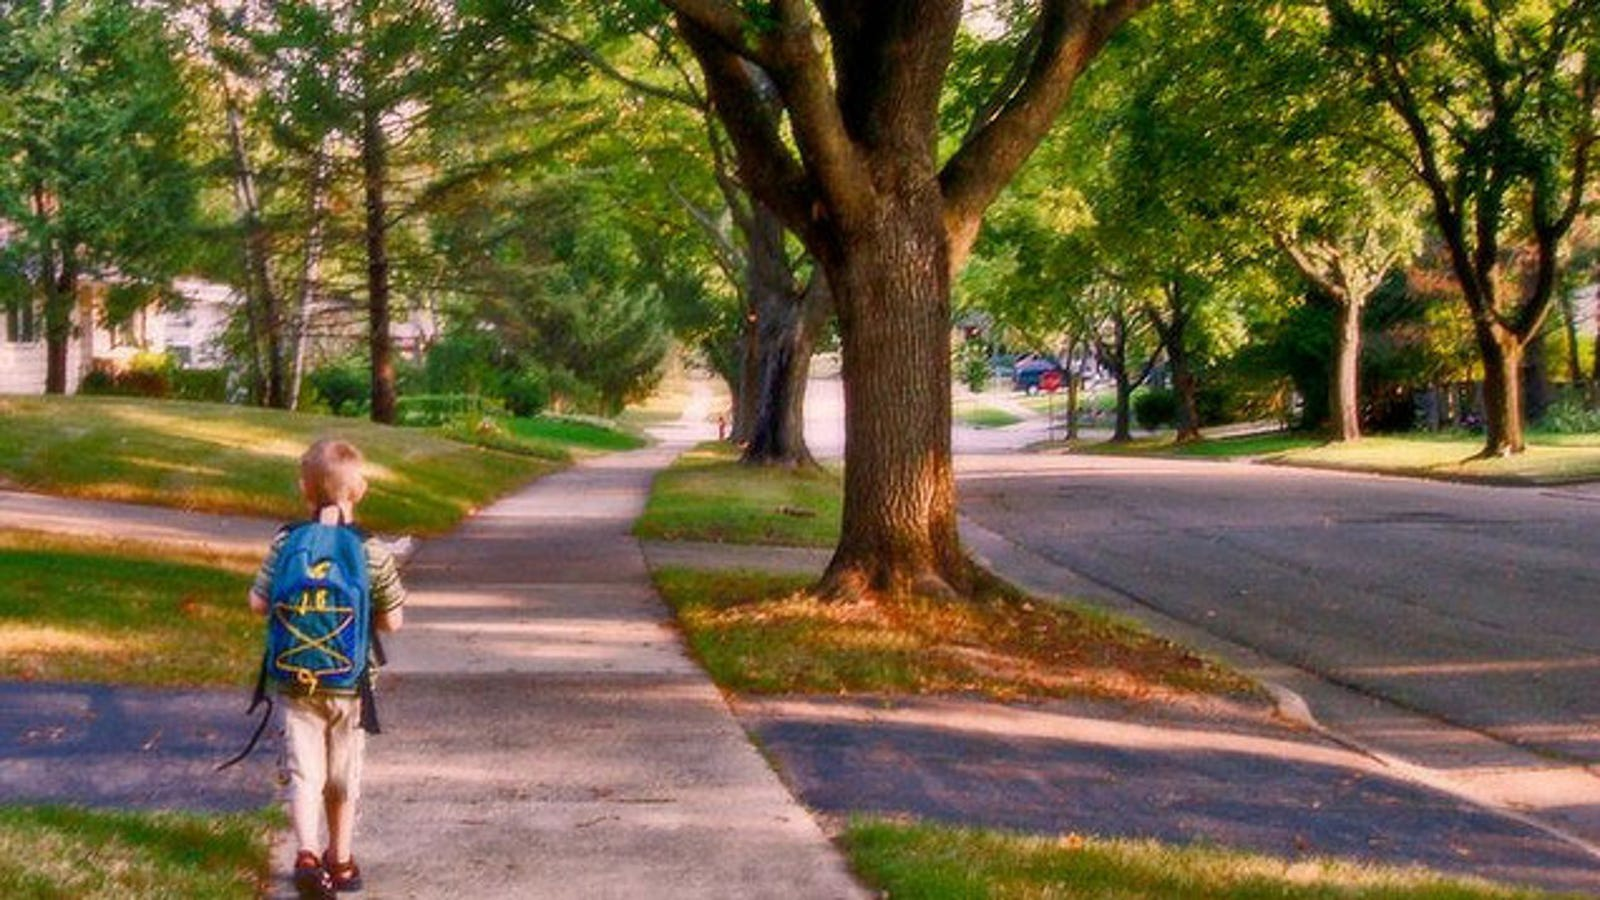 Your Kids Can Now Walk To School Alone Without You Getting